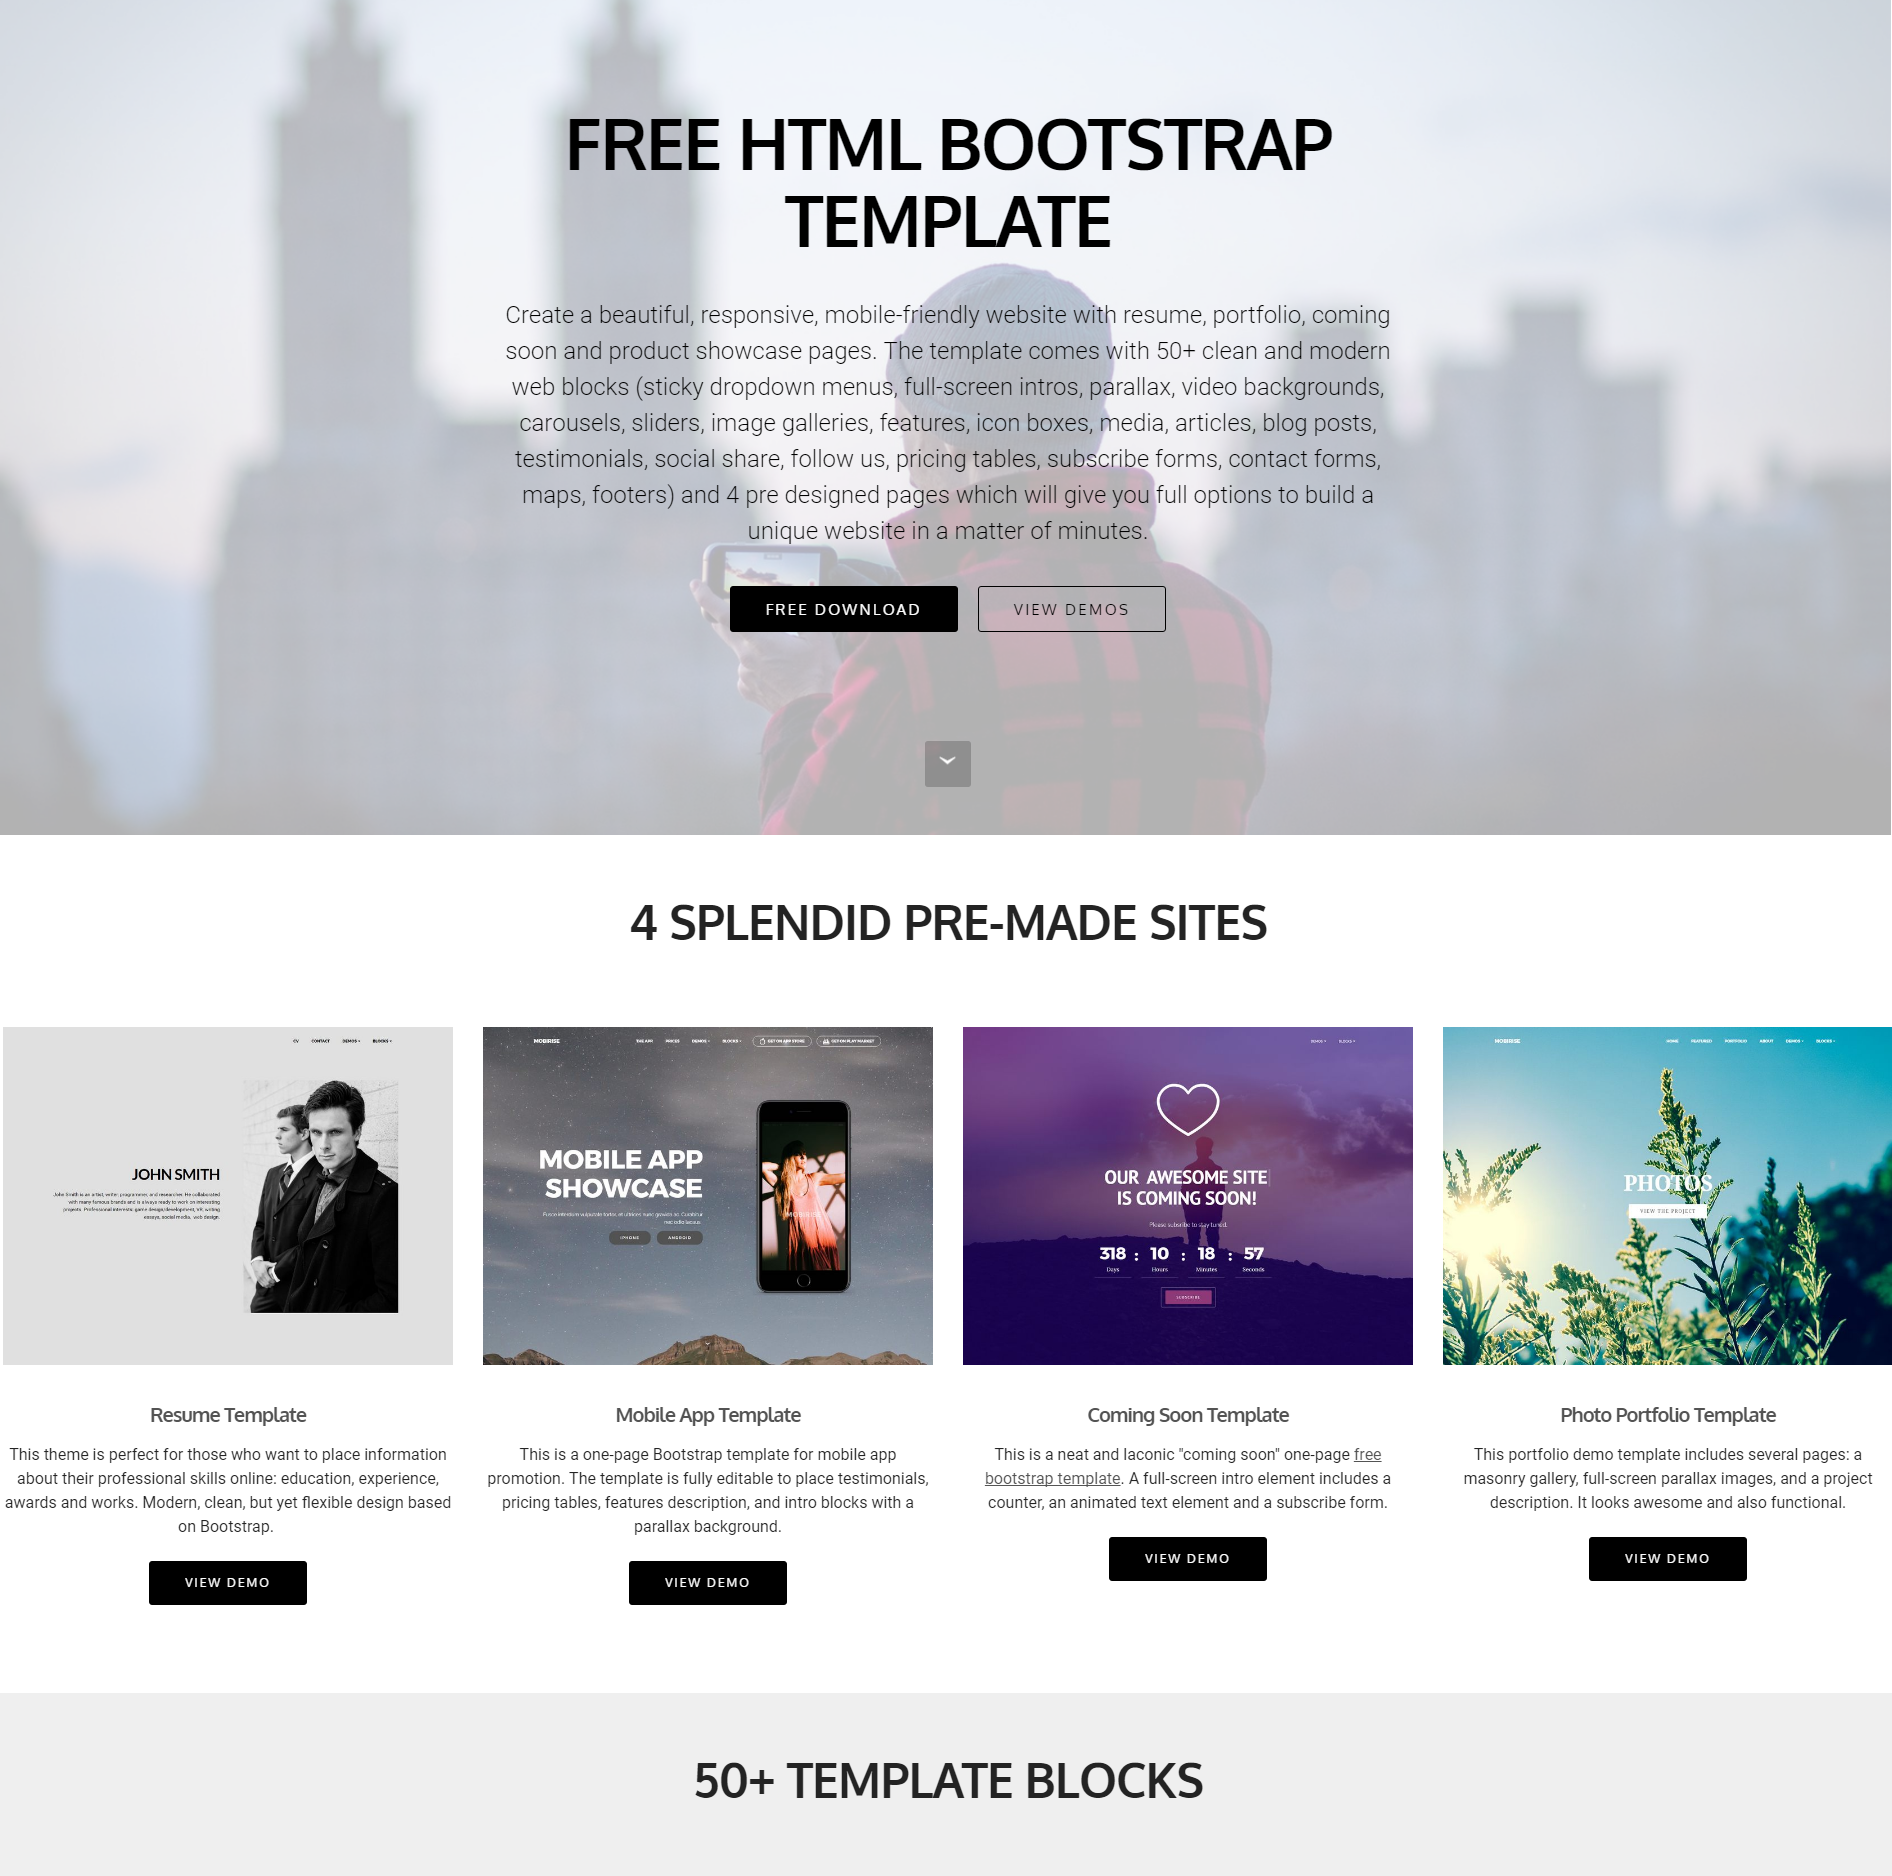 30+ Slick Free HTML Bootstrap Templates 2018